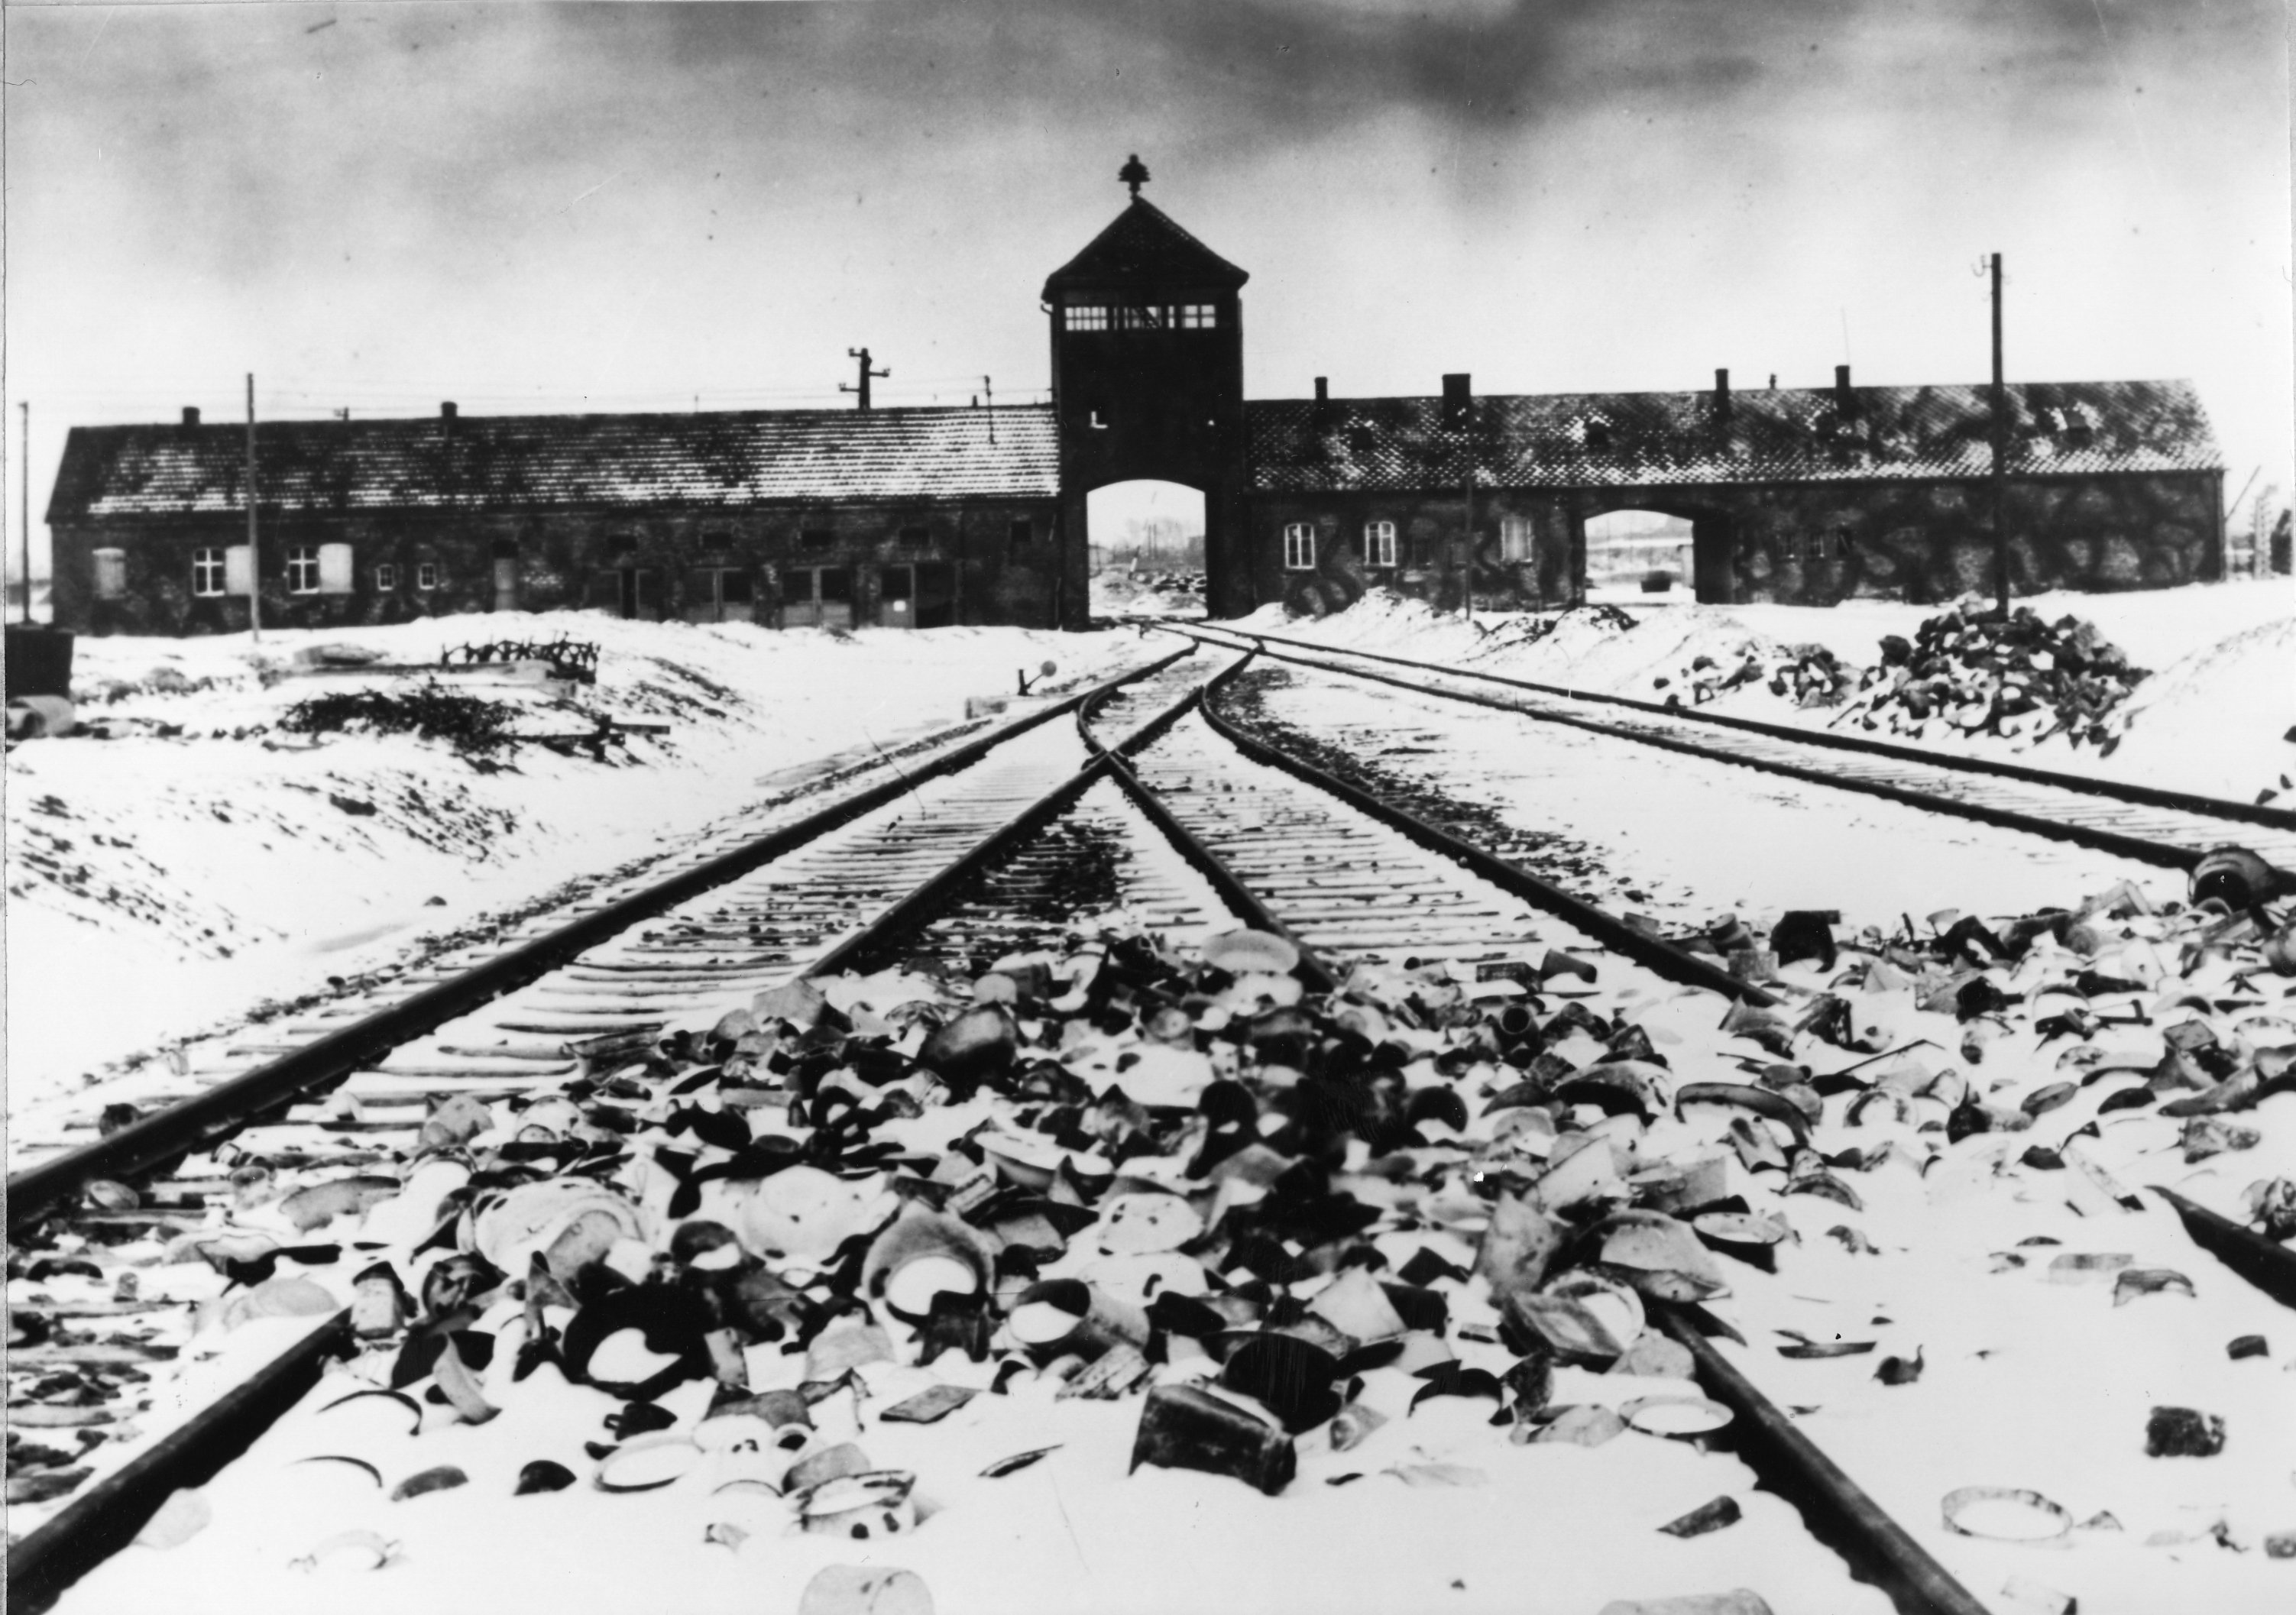 Entry to the concentration camp Auschwitz-Birkenau, Poland, in February/March 1945